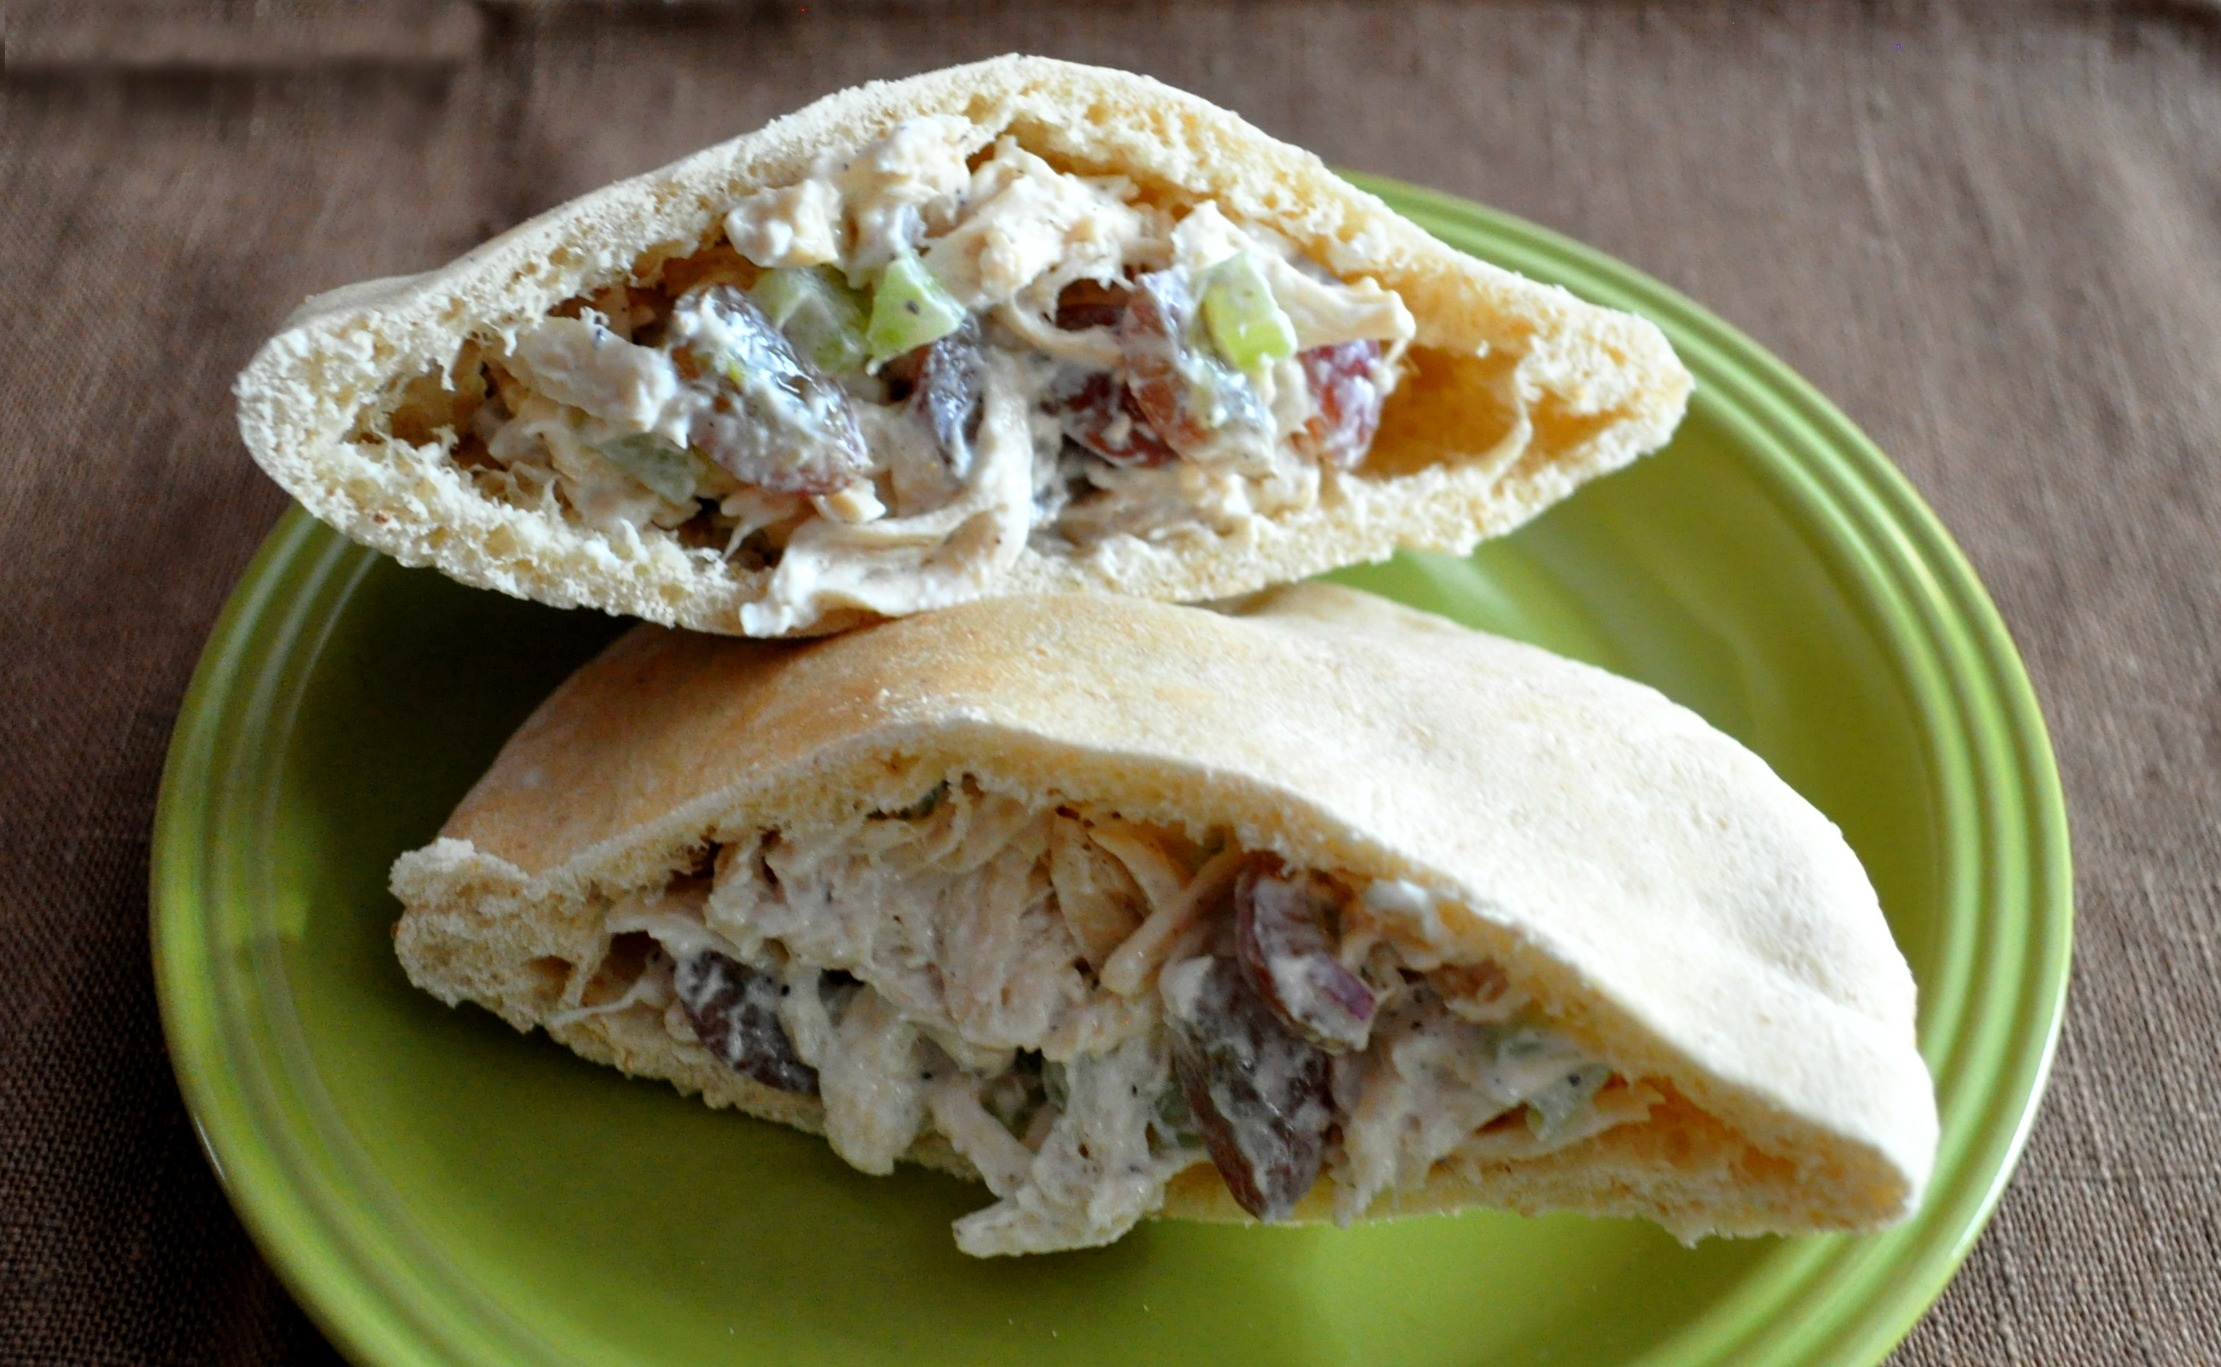 Hot And Cold Sandwich Ideas Mommysavers